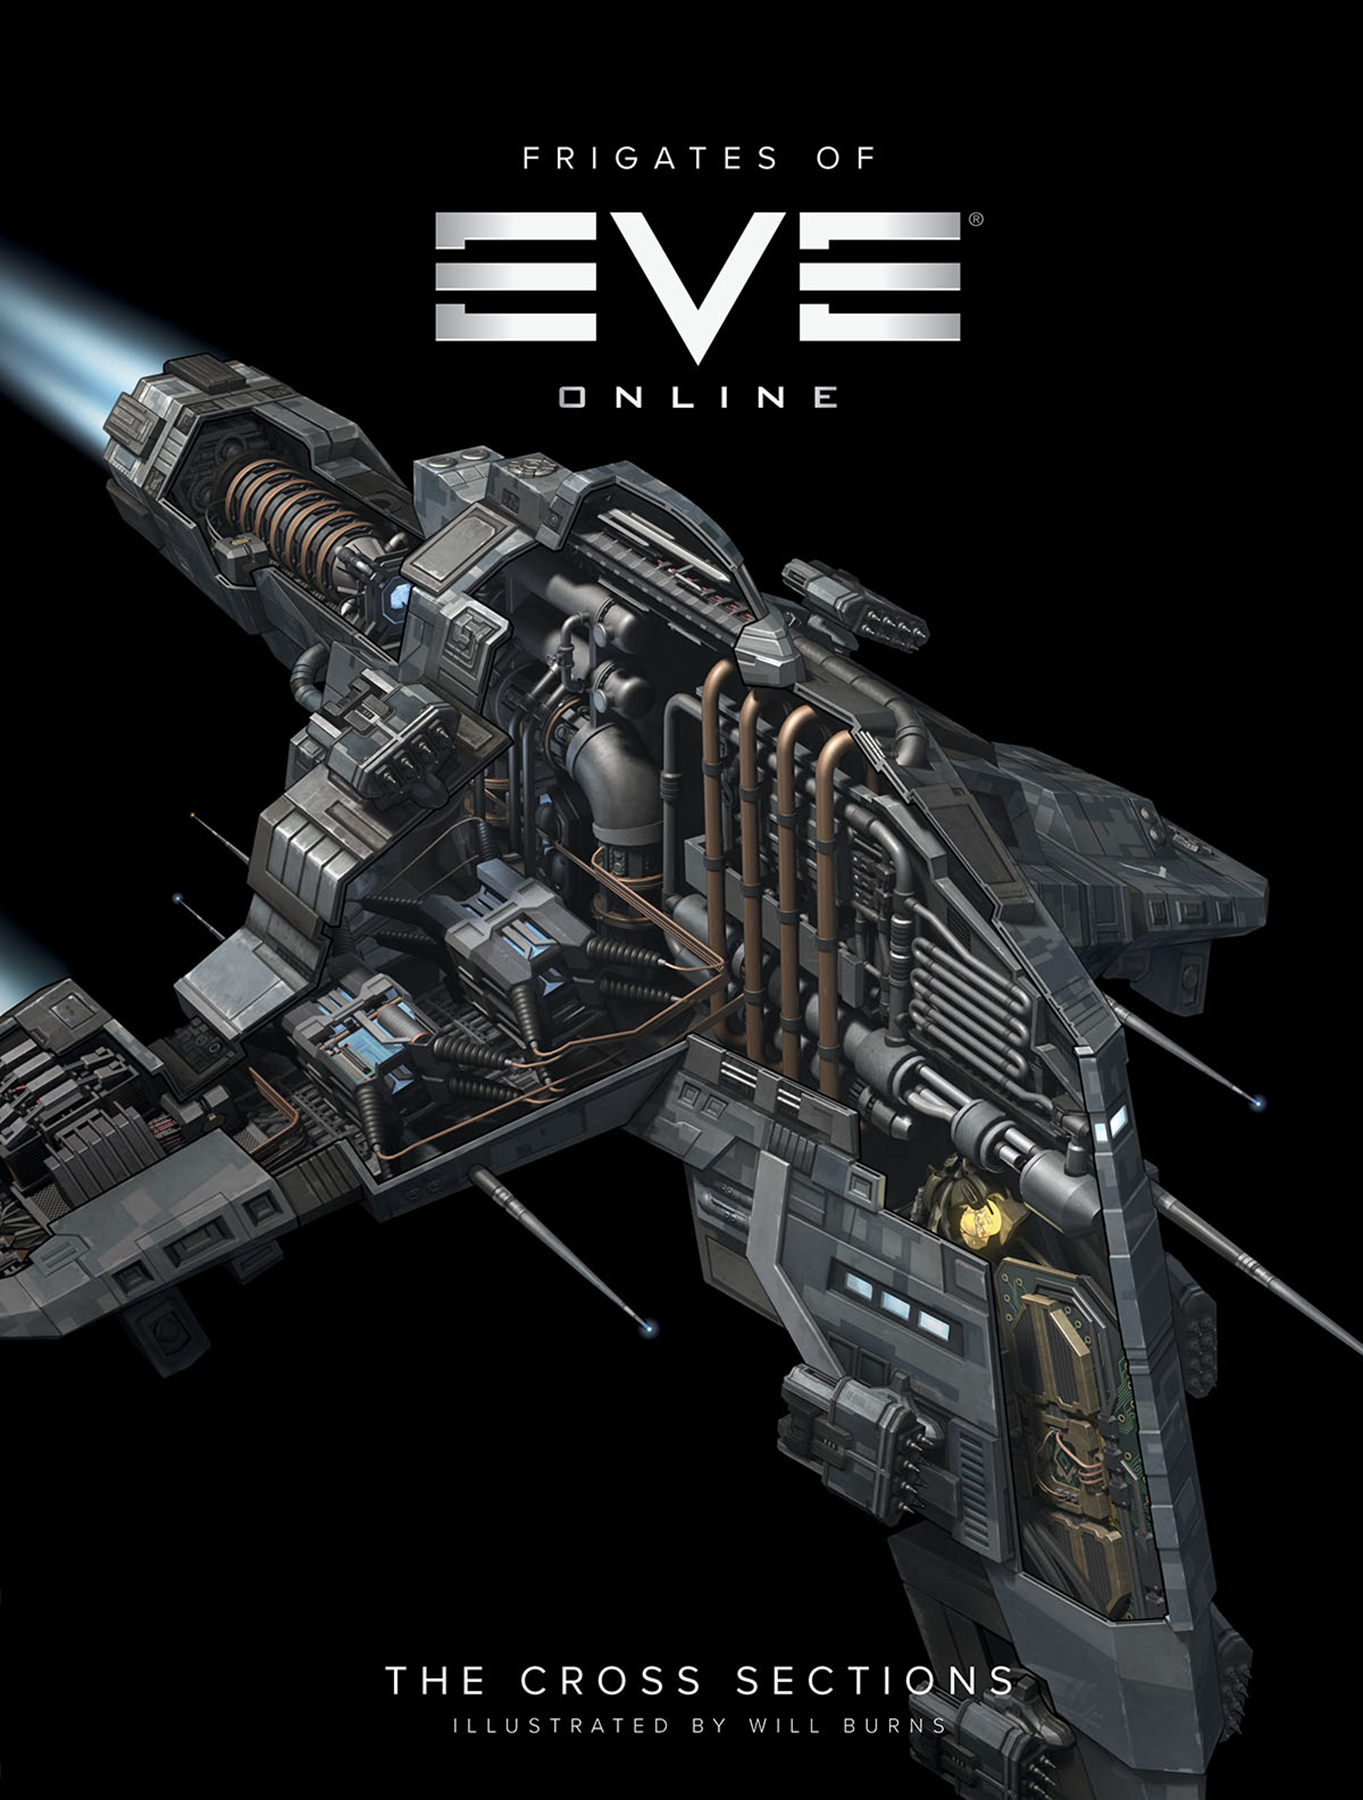 FRIGATES OF EVE ONLINE CROSS SECTIONS HC